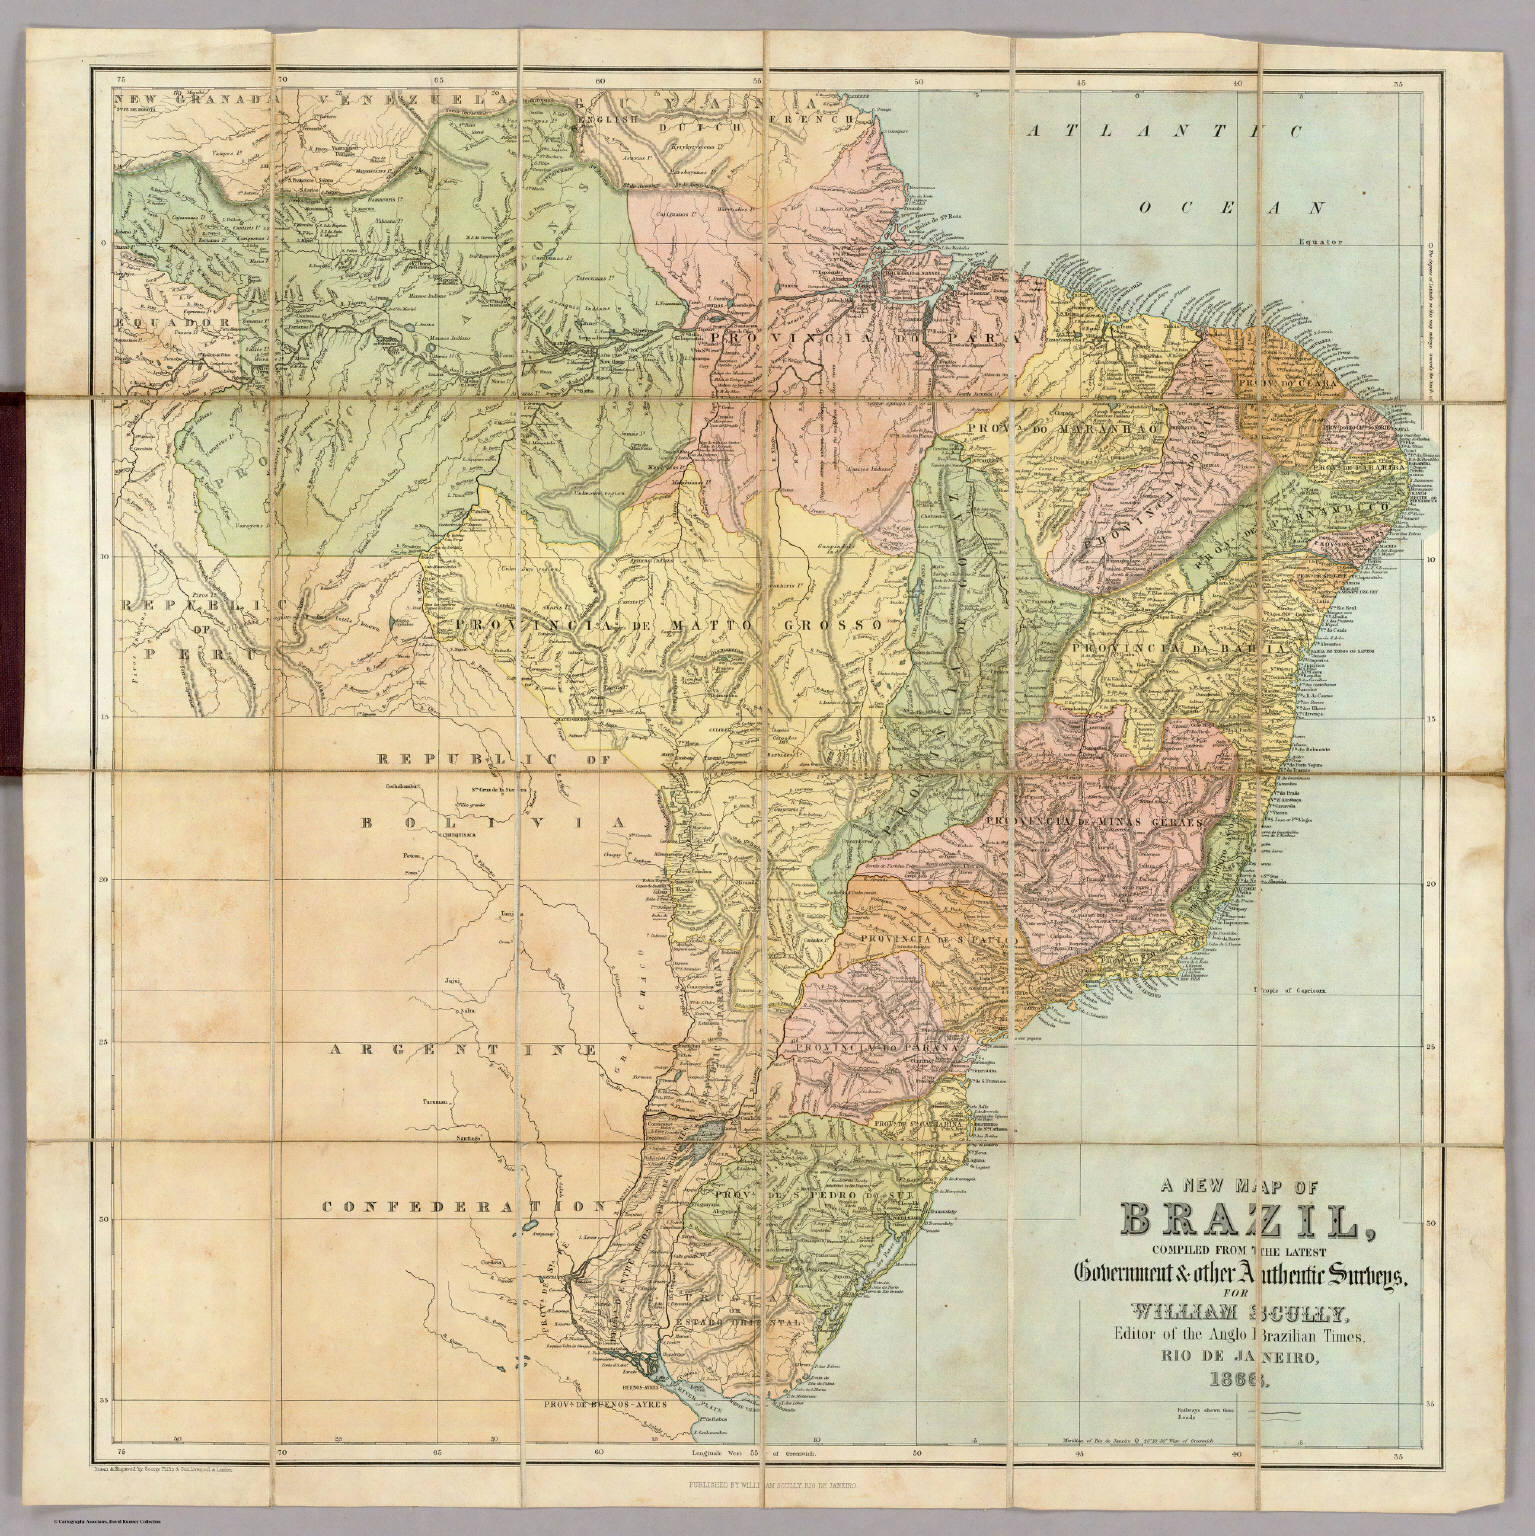 new map of Brazil Scully William 1866